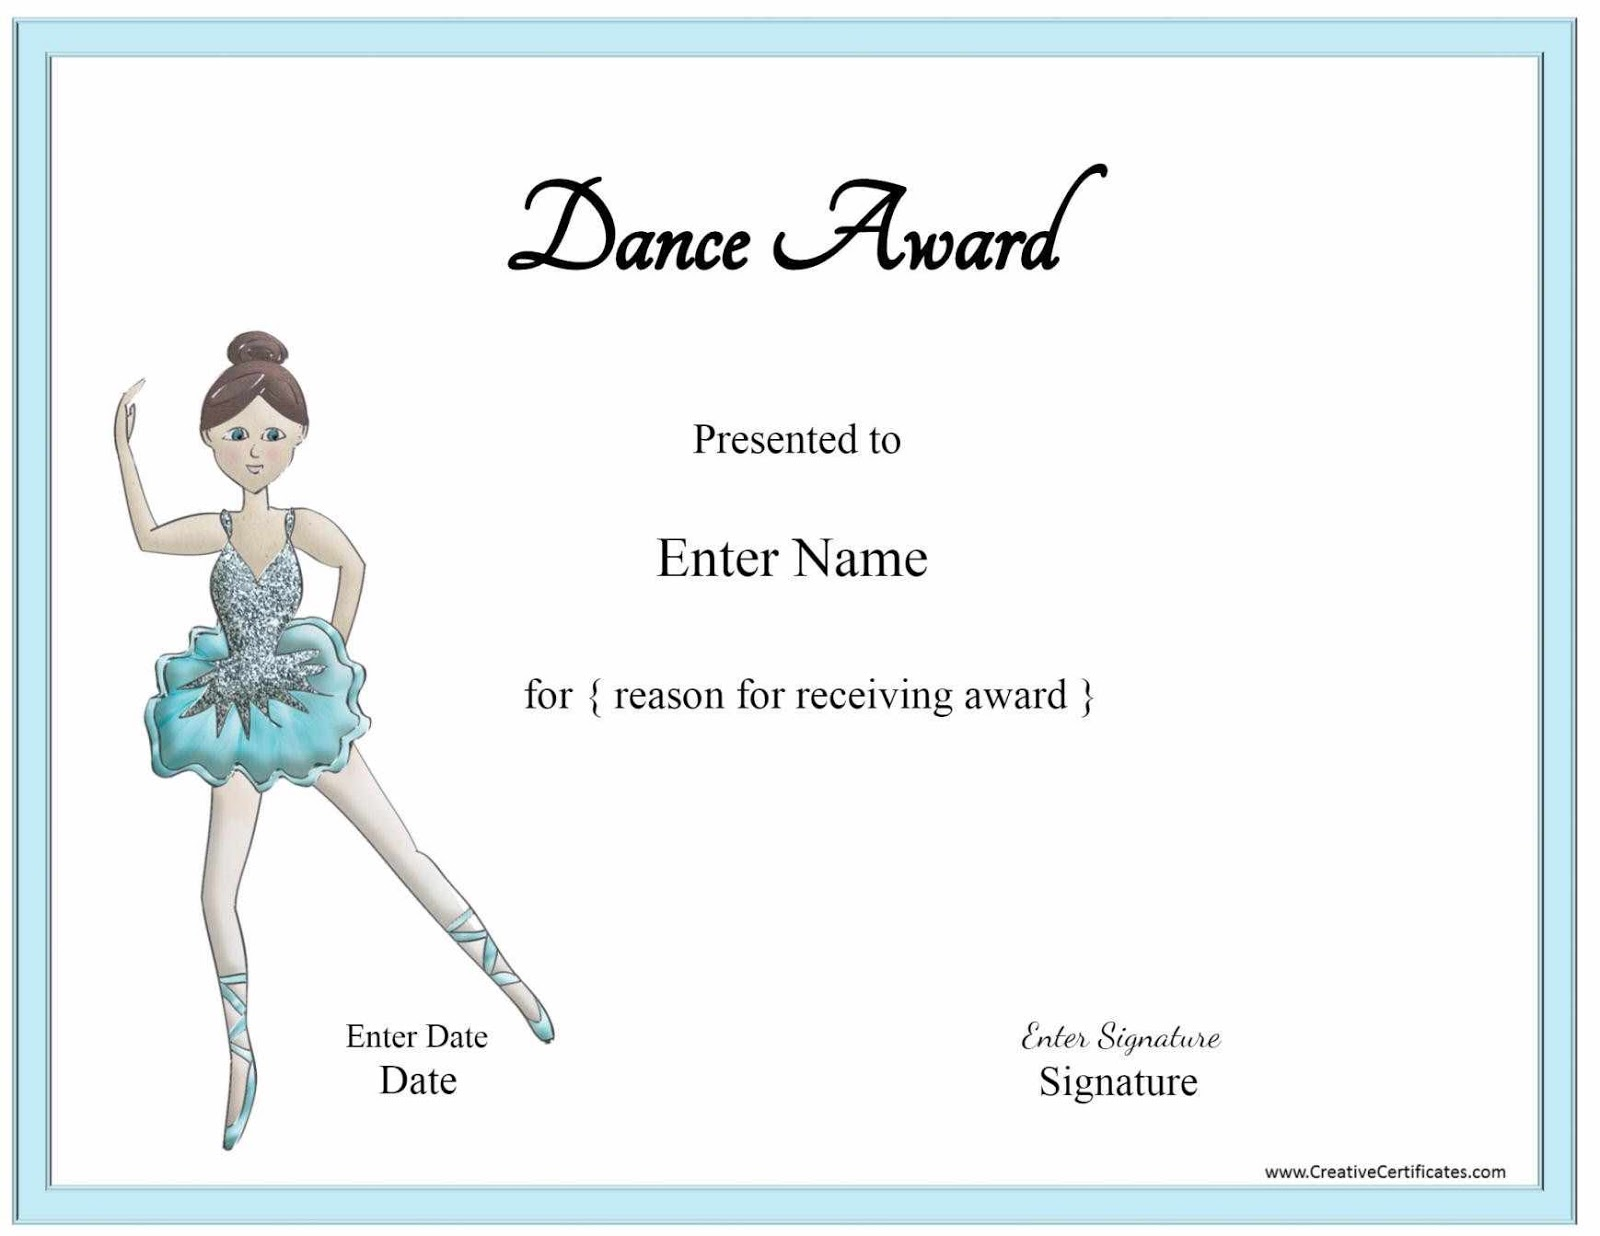 Certificate templates october 2016 award certificate template dance hjaaw yadclub Image collections